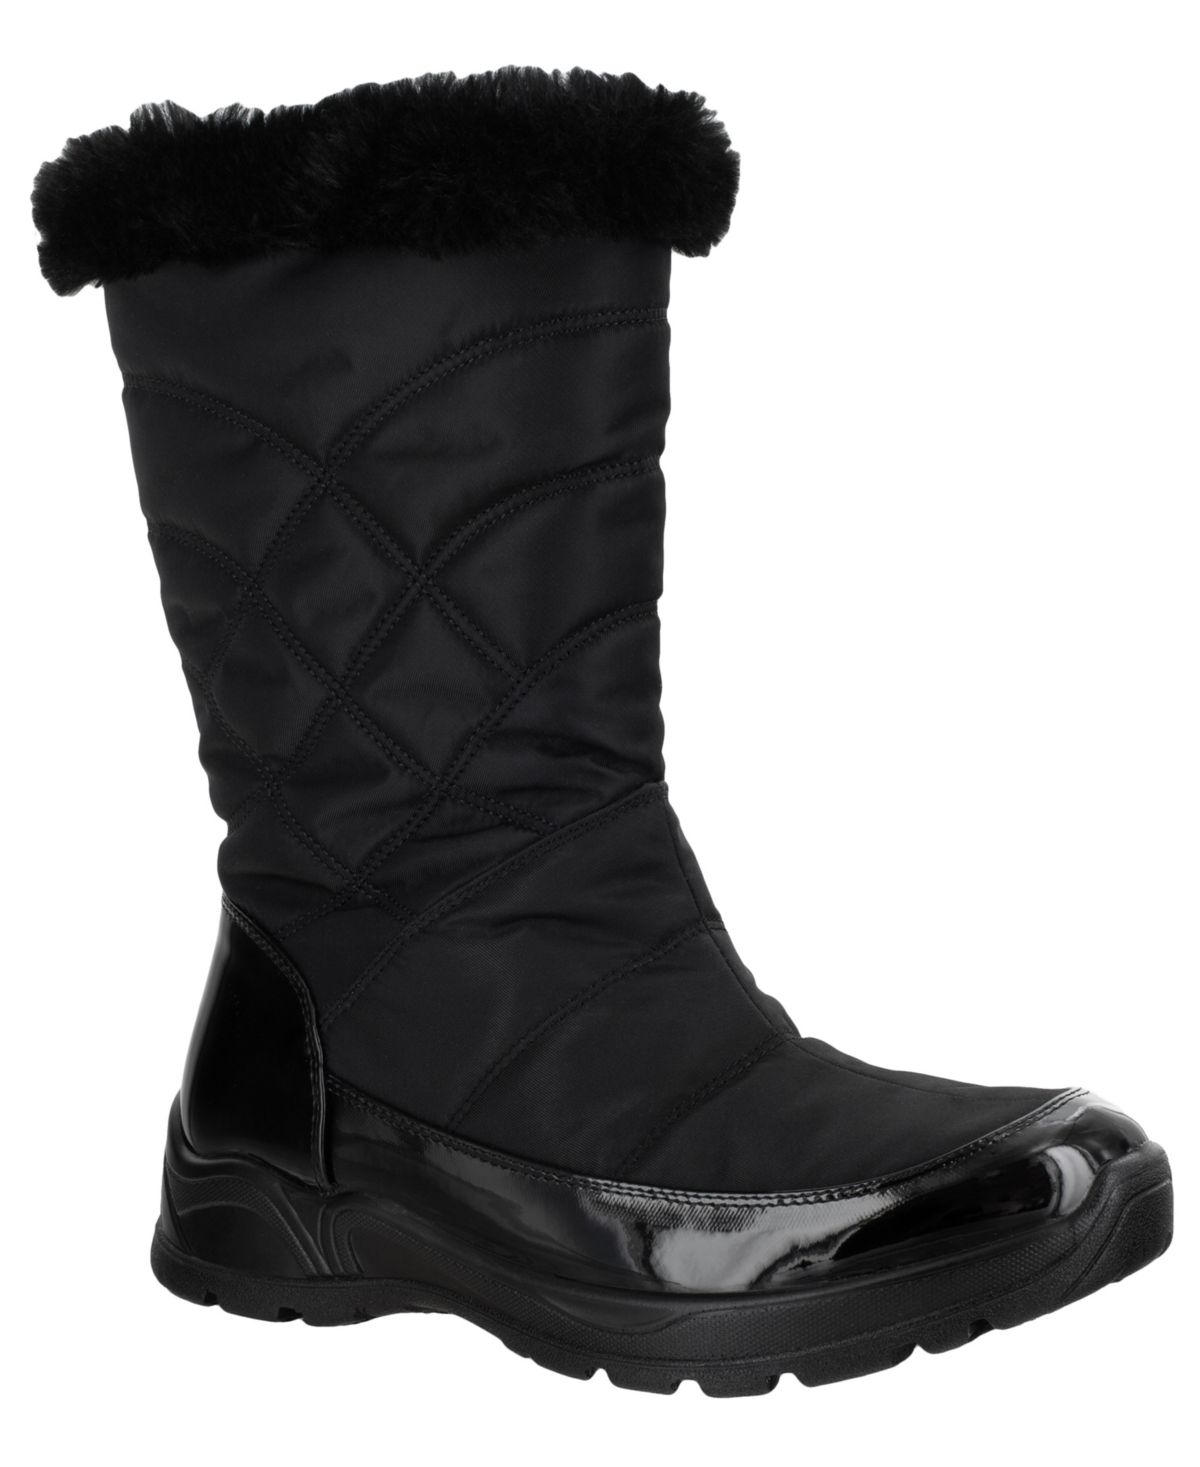 Easy Dry by Easy Street Cuddle Waterproof Boots -